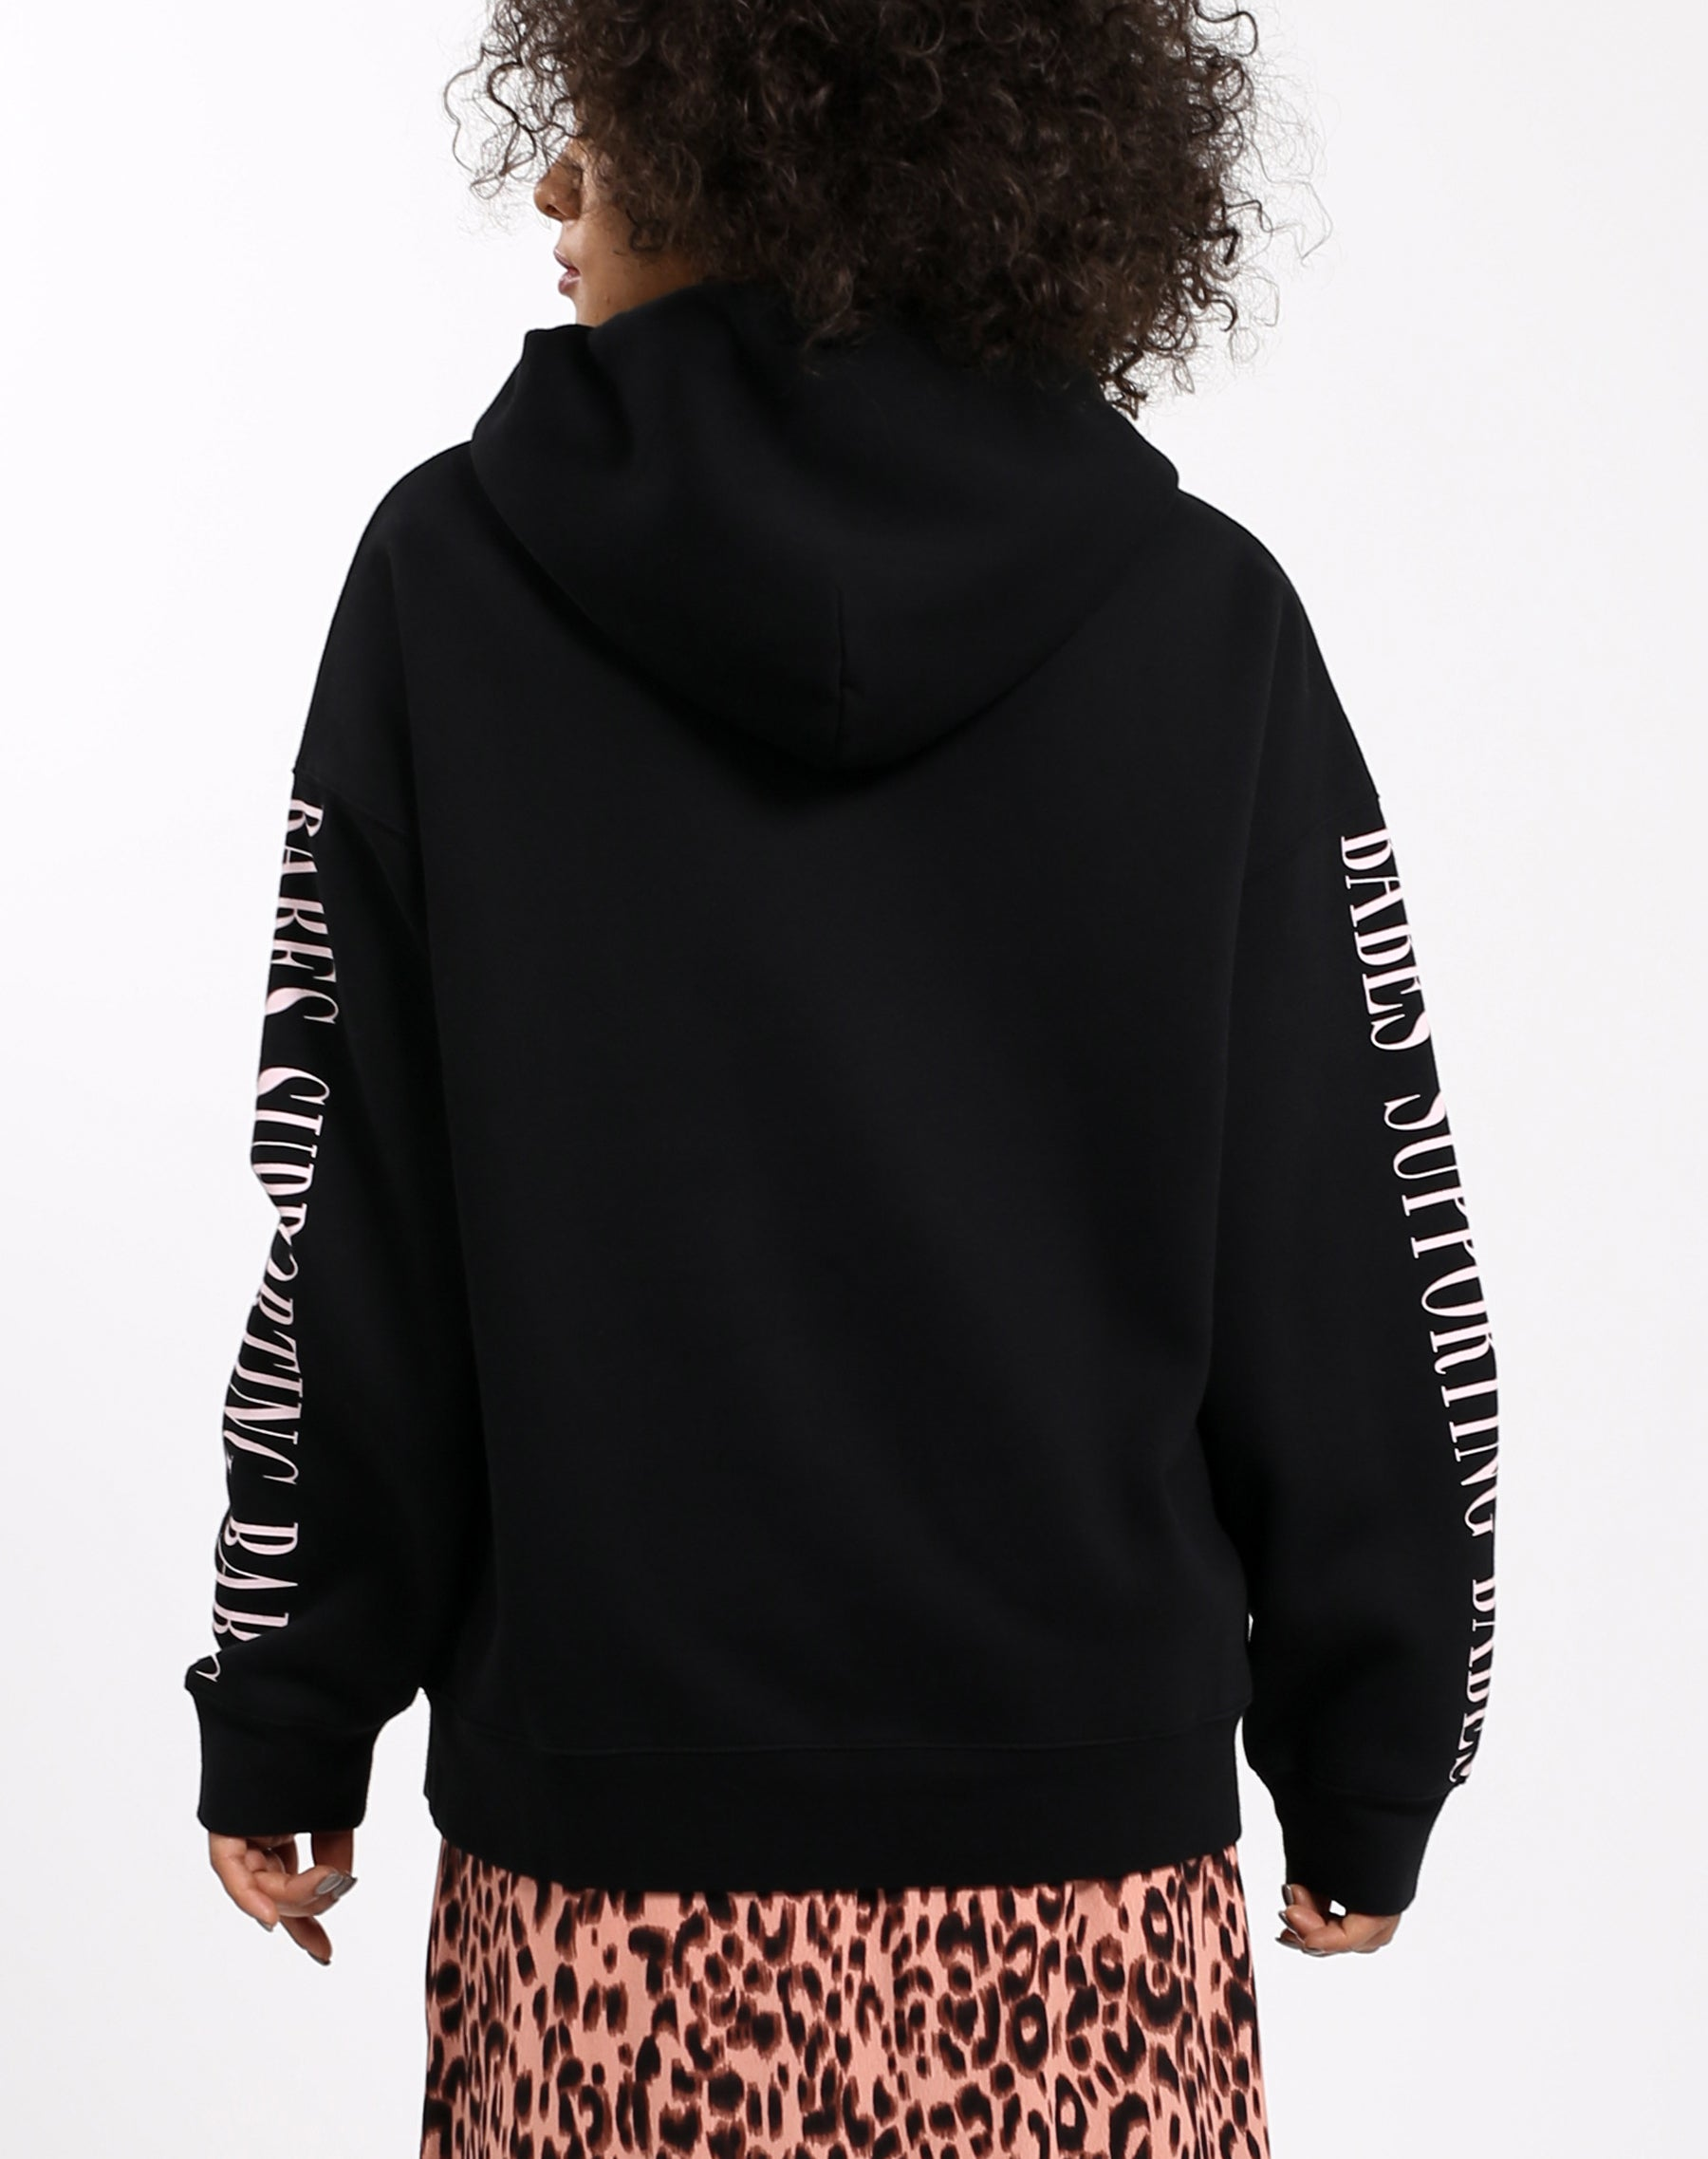 Photo of the back of the Babes Supporting Babes big sister hoodie in pink and black by Brunette the Label.